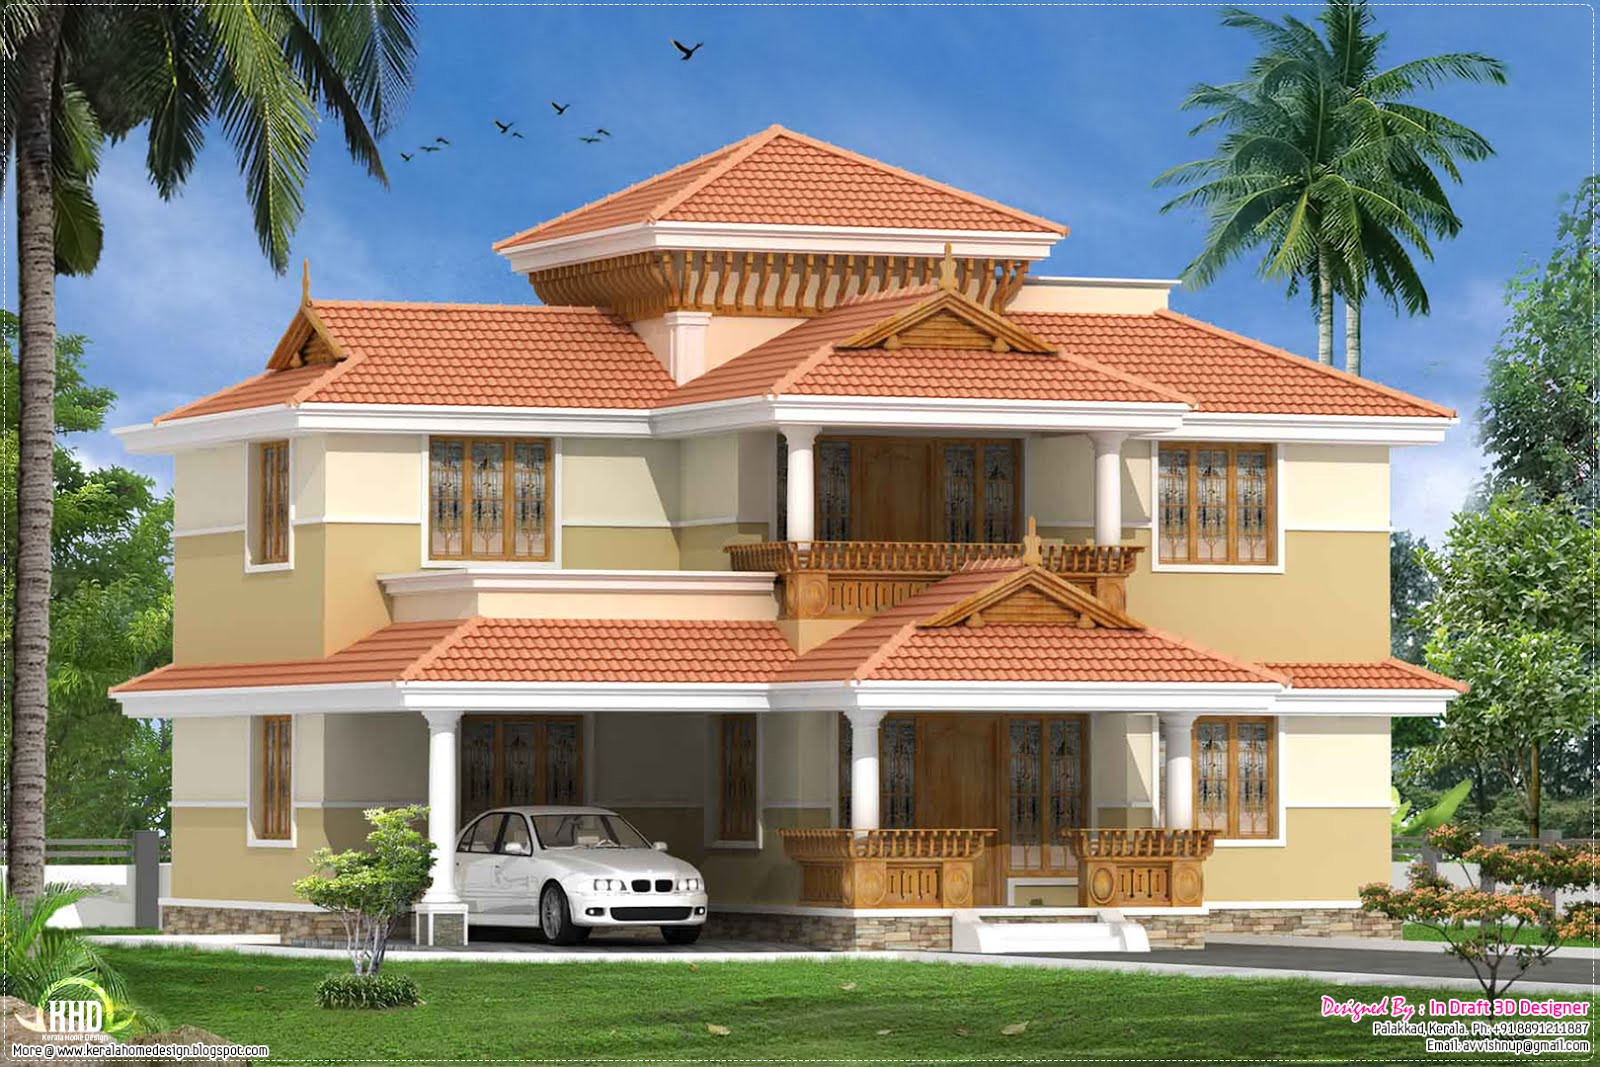 Great Kerala Home Design Model 1600 x 1067 · 320 kB · jpeg